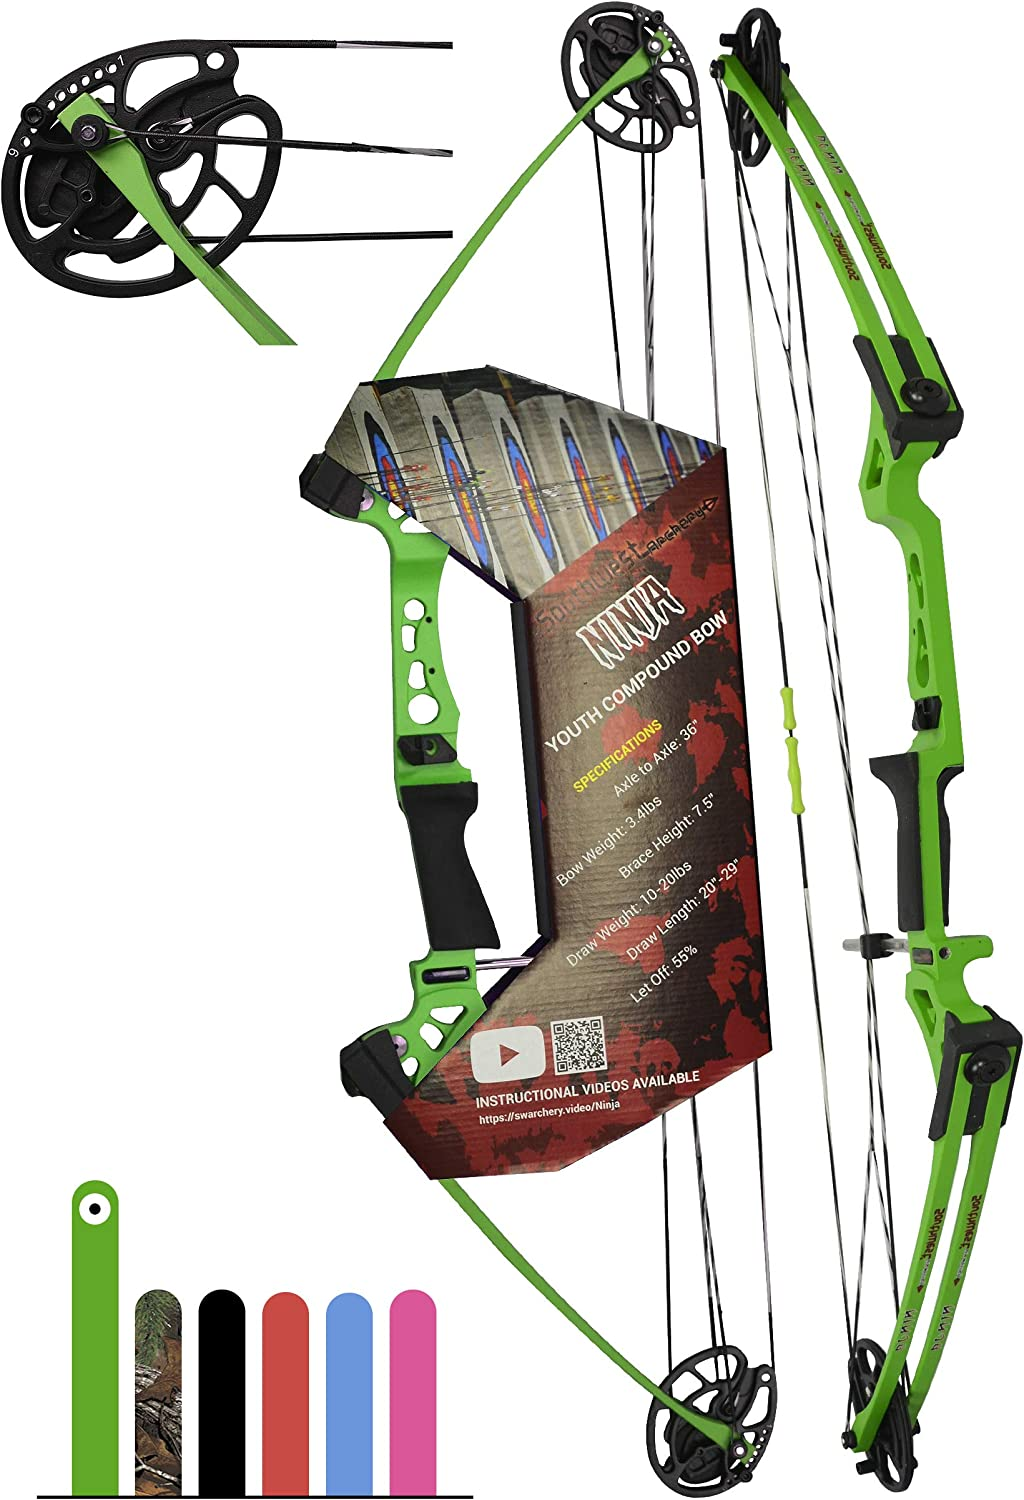 "Southwest Archery Ninja Kids Youth Compound Bow Kit - Fully Adjustable 20-29"" Draw 10-20LB Pull - 55% Let Off - Pre-Installed Arrow Rest - Finger Saver String - RH, Green"